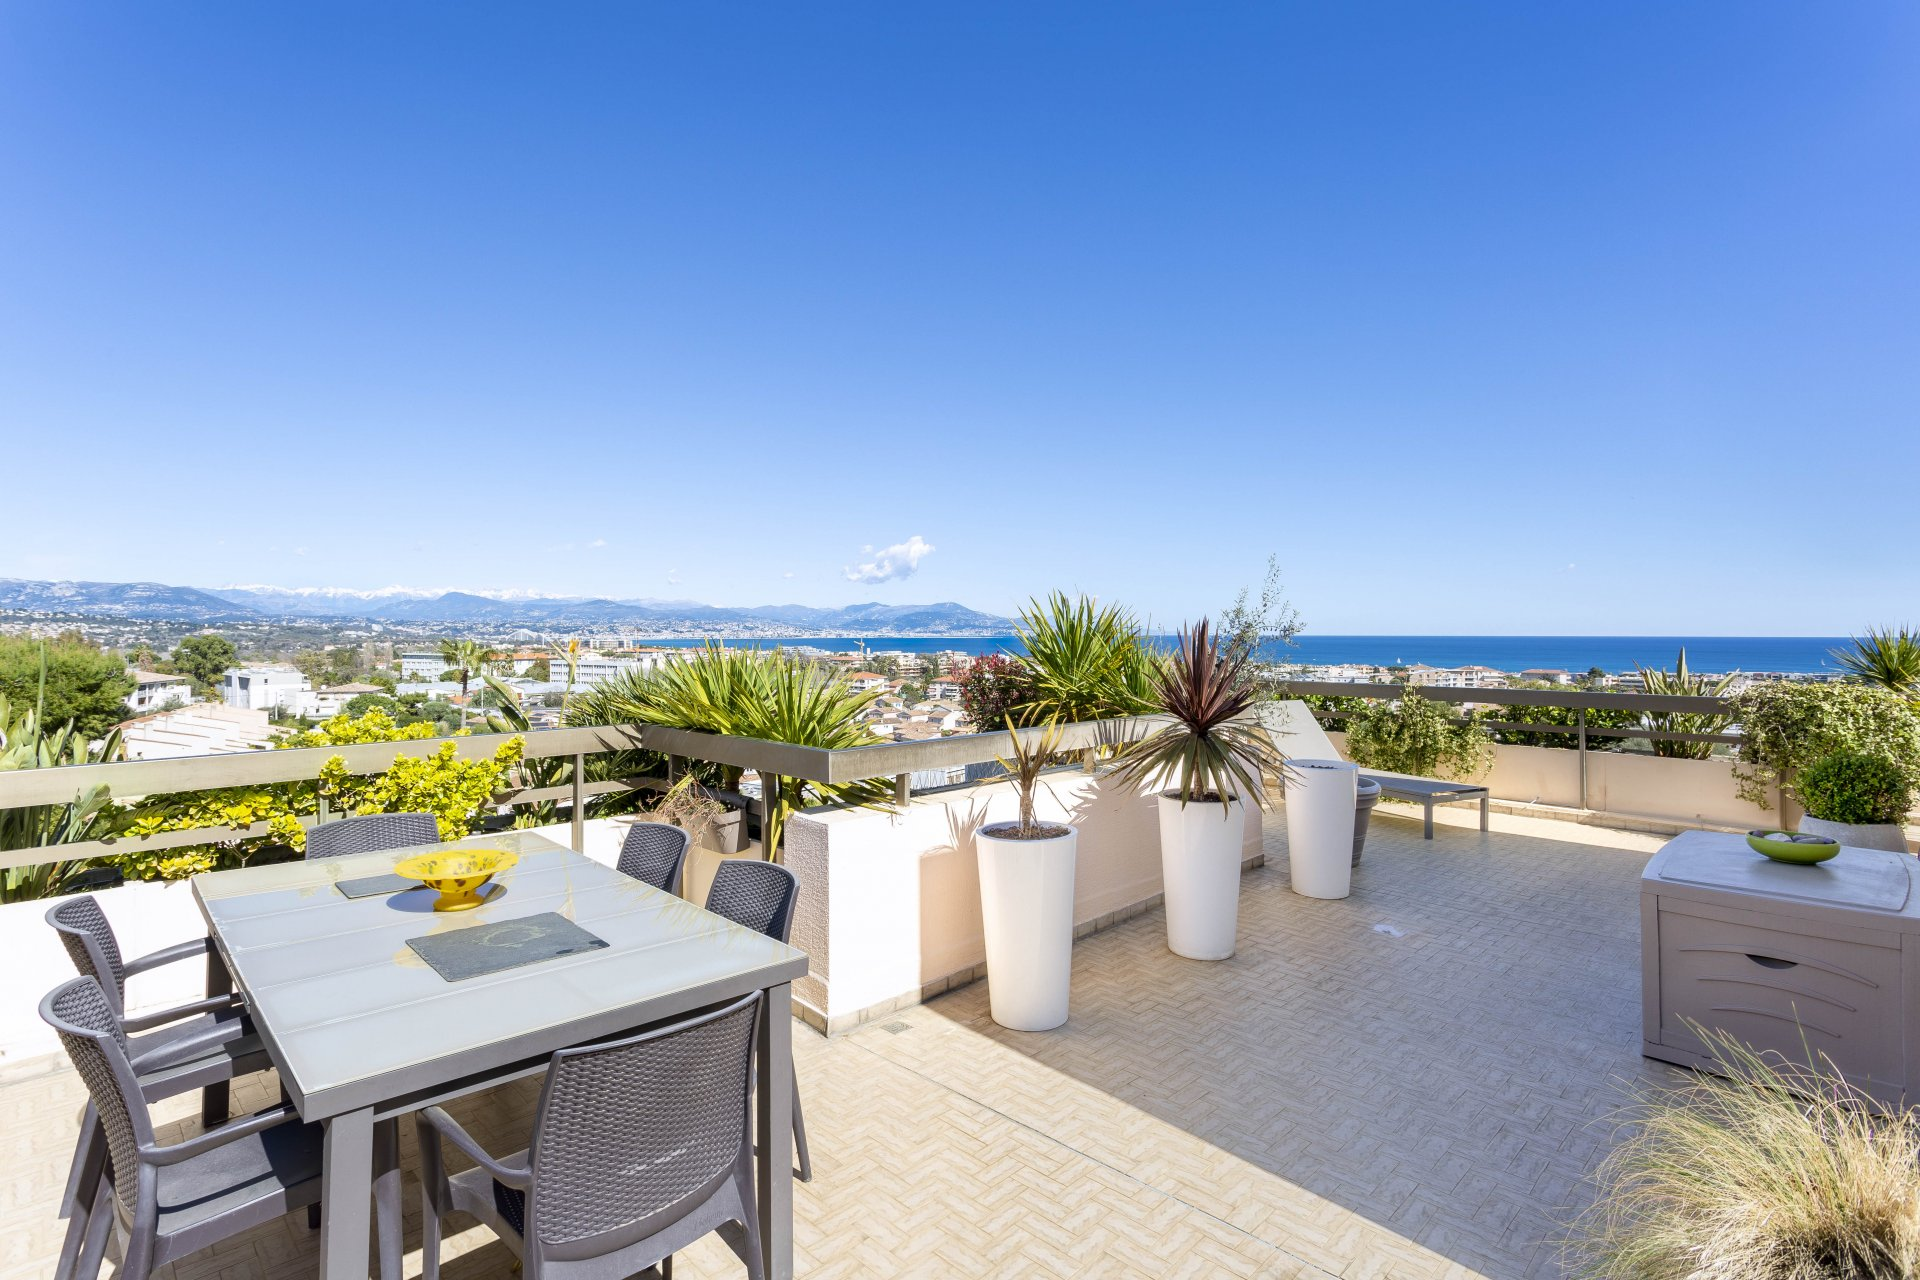 Penthouse, 151 m² terrace, sea view, garage, caretaker, close to town-centre in Antibes